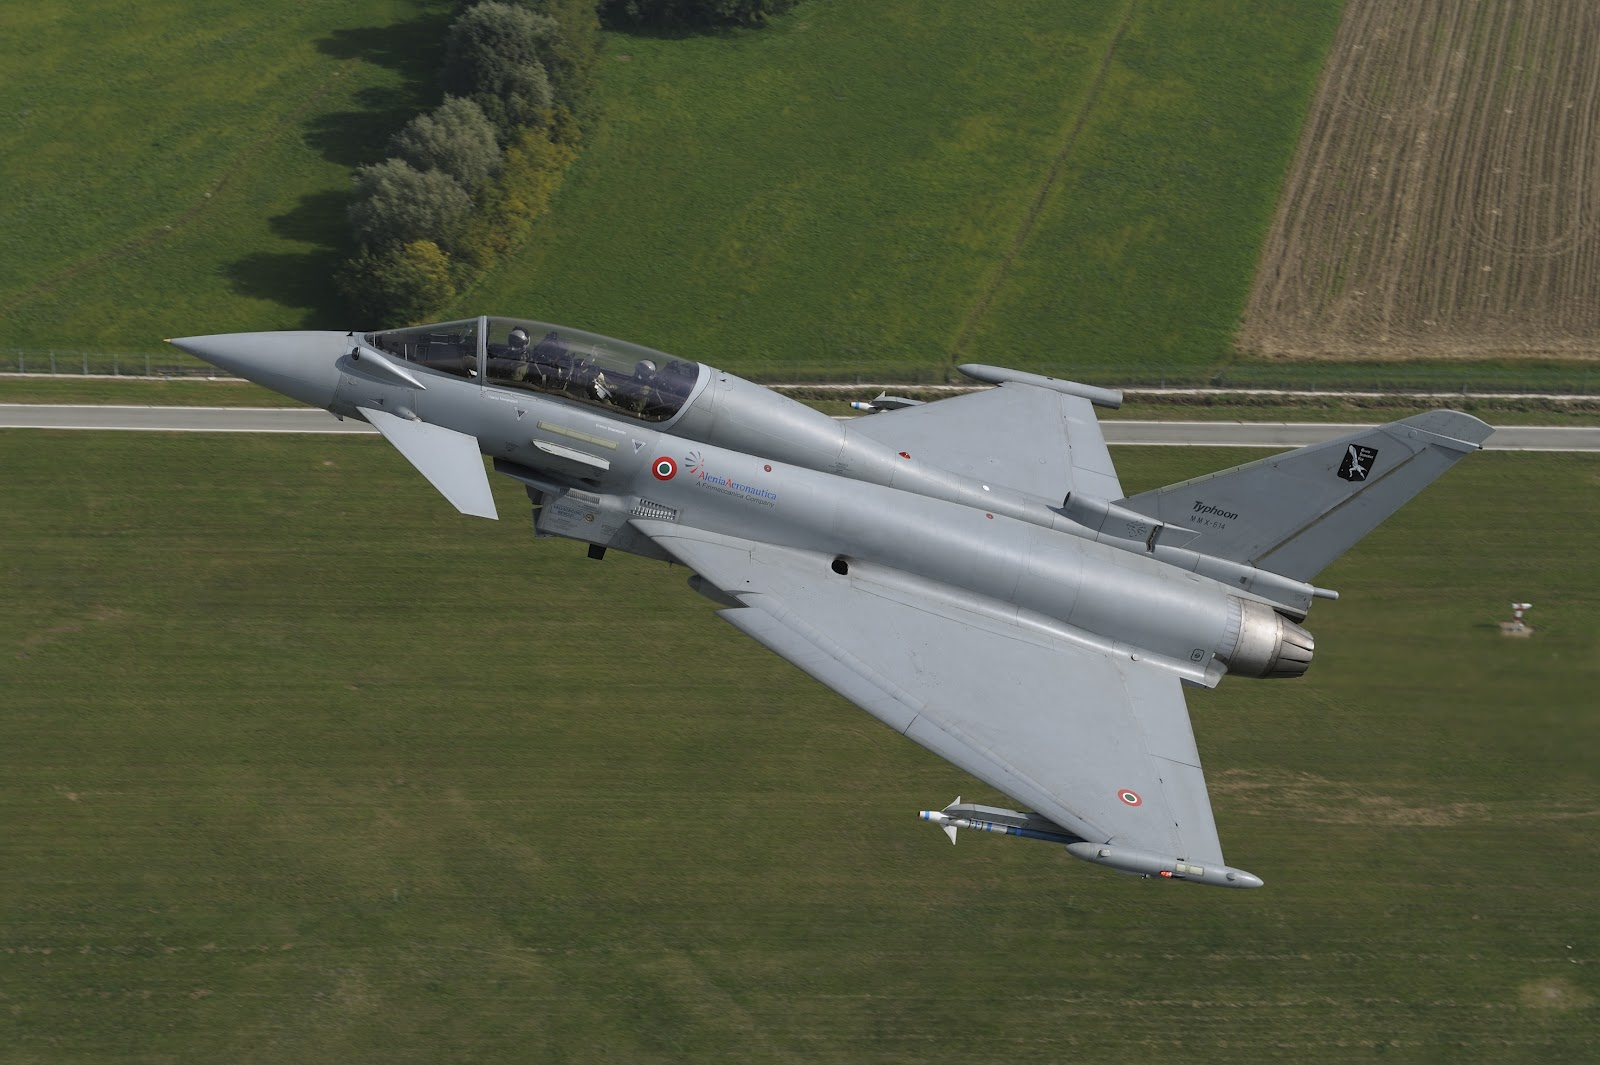 http://4.bp.blogspot.com/-7BnxOqjCots/T-x7D2a56EI/AAAAAAAAKOA/_LyYvfKzrac/s1600/eurofighter_typhoon_cross_country.jpg